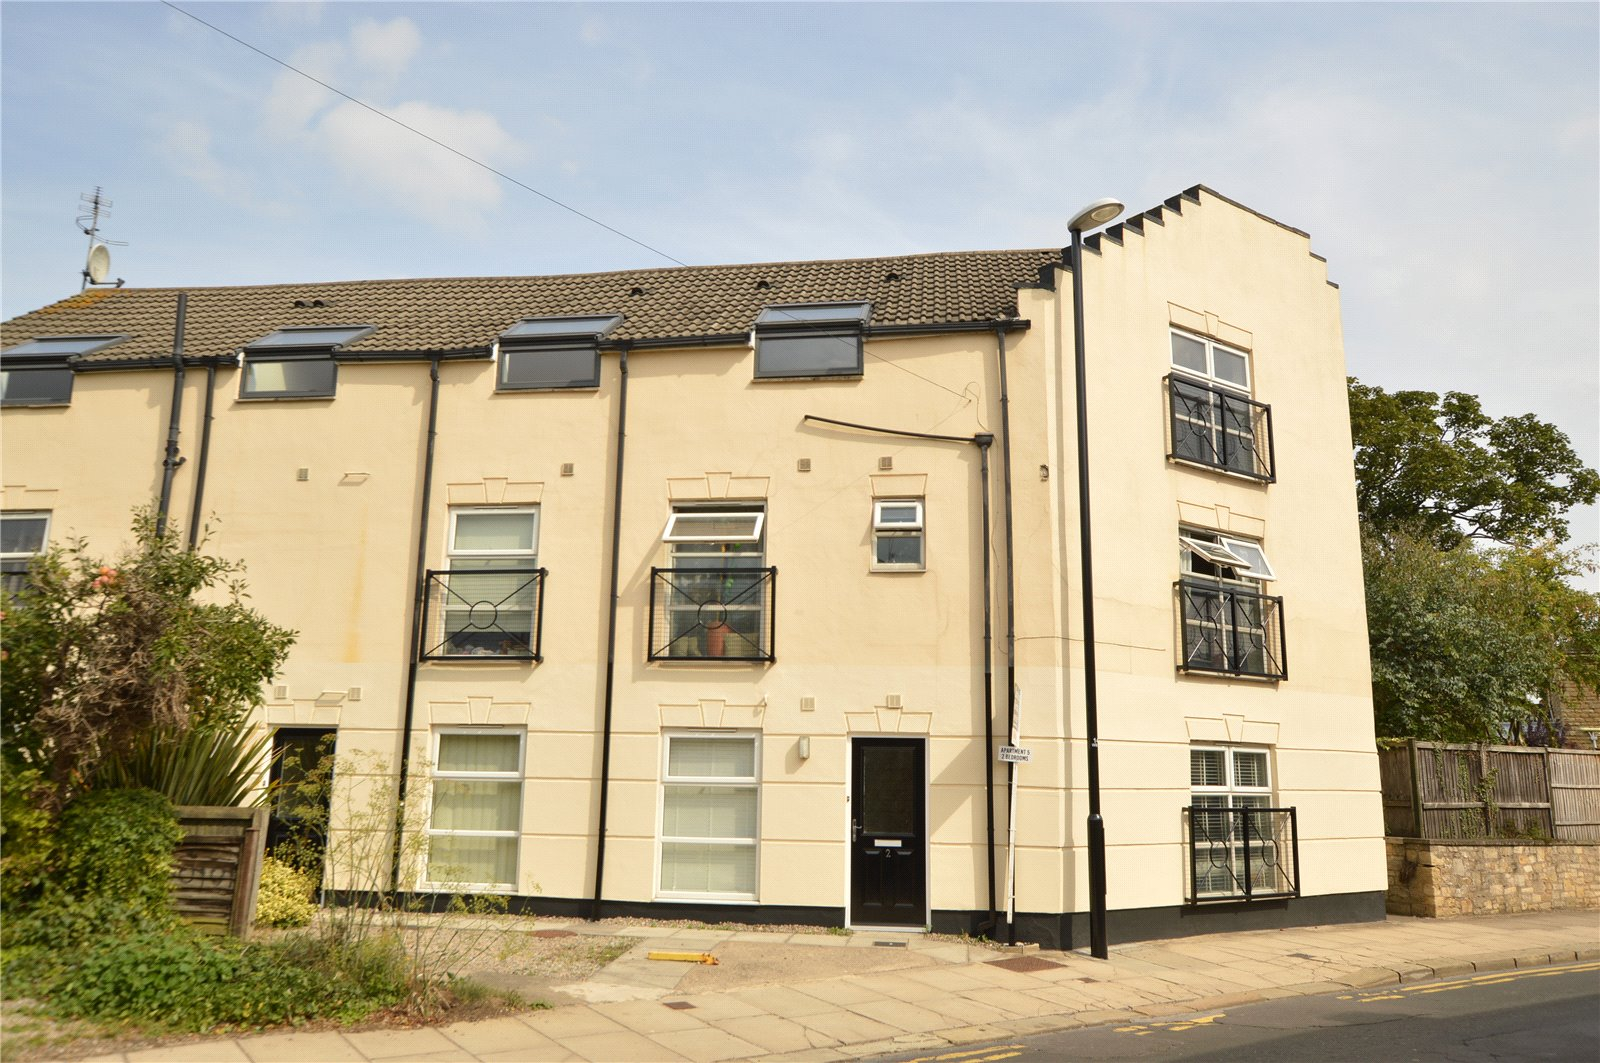 property for sale in Wetherby, exterior of apartment building